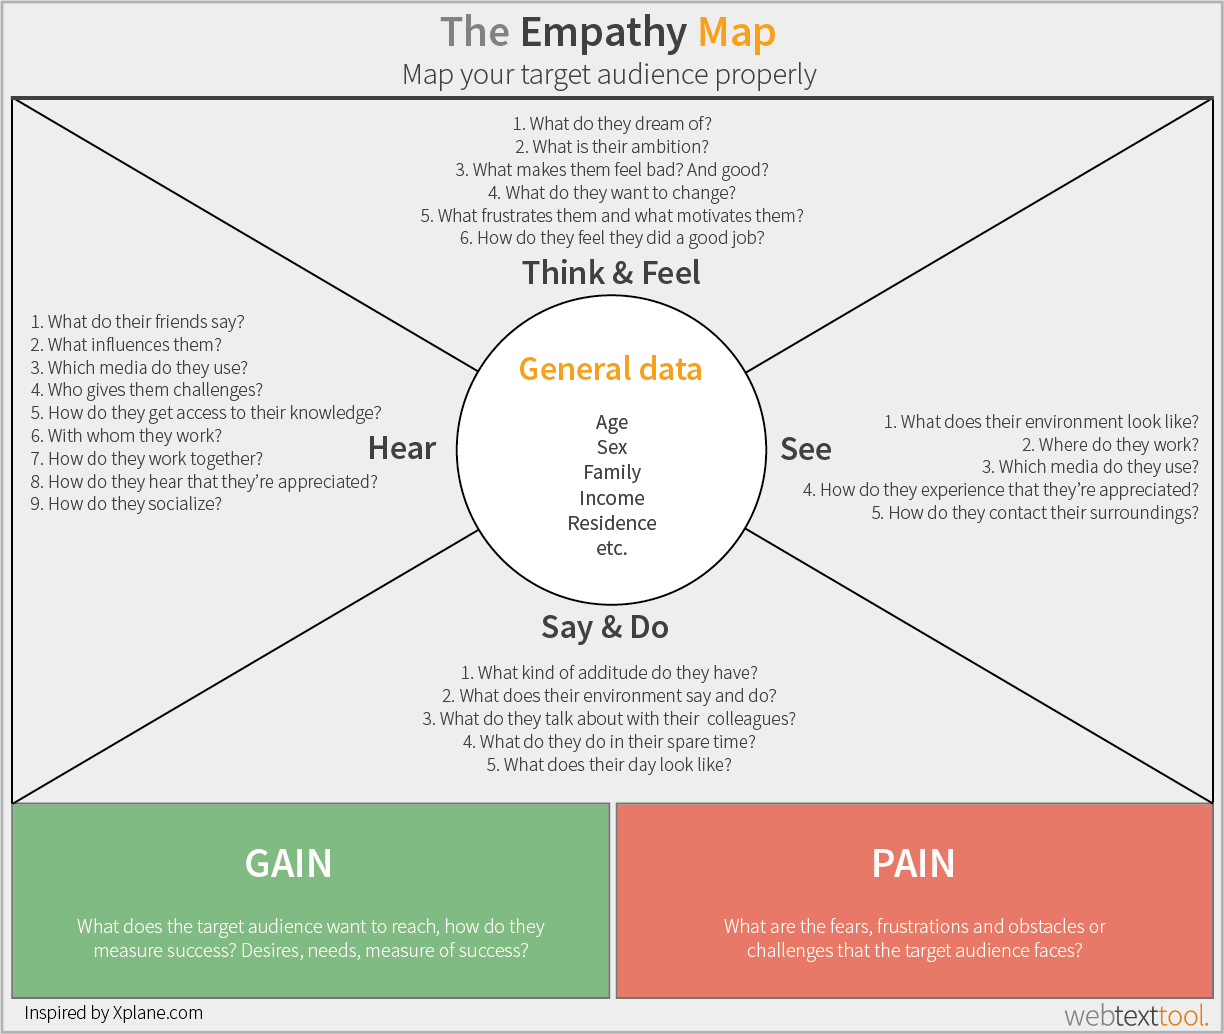 The Emphathy map